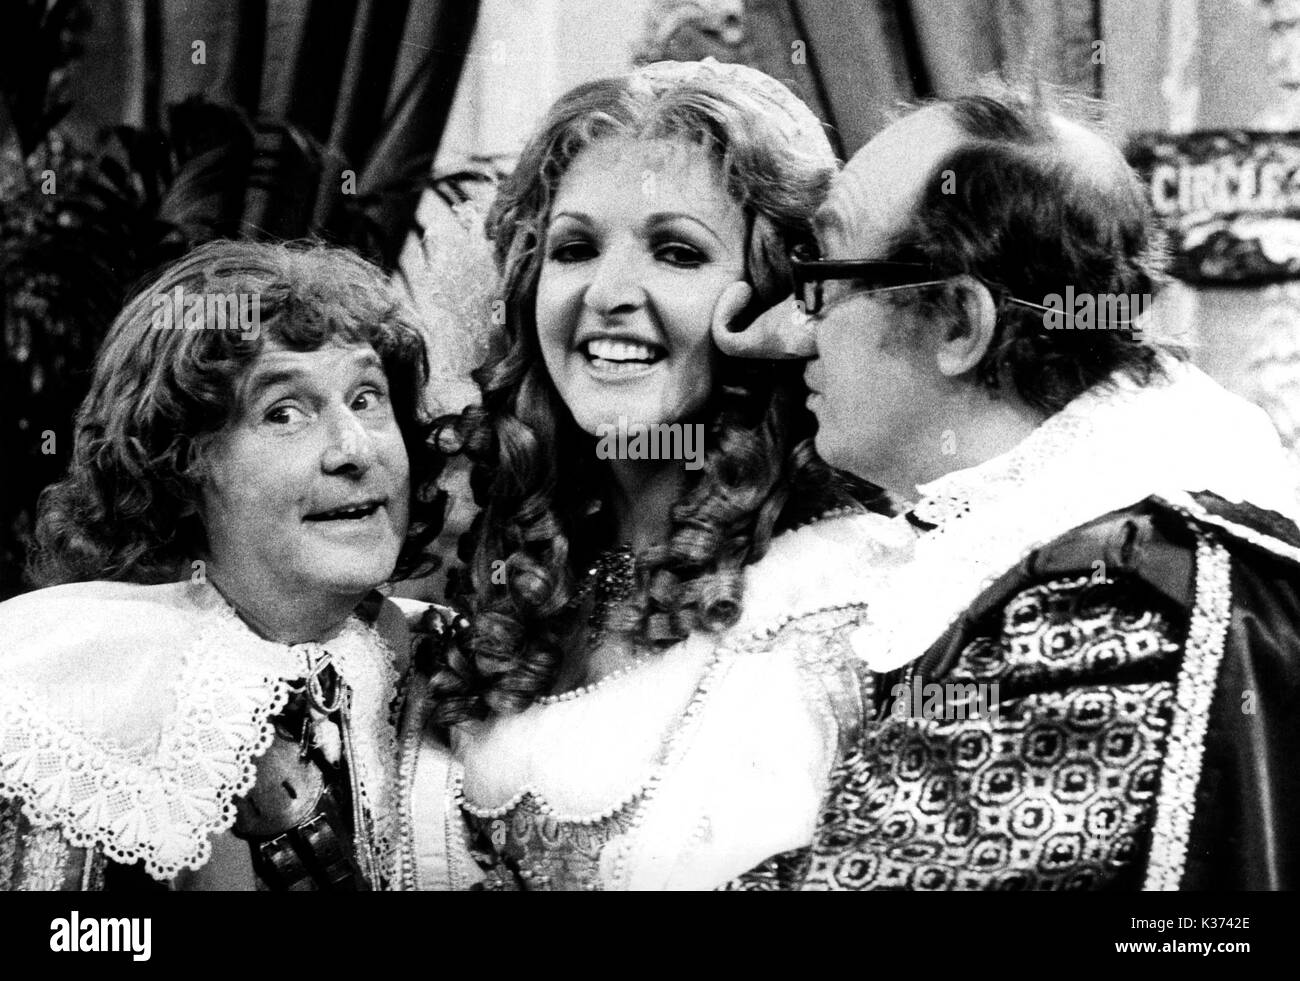 THE MORCAMBE AND WISE CHRISTMAS SHOW ERNIE WISE, PENELOPE KEITH, ERIC MORCAMBE - Stock Image